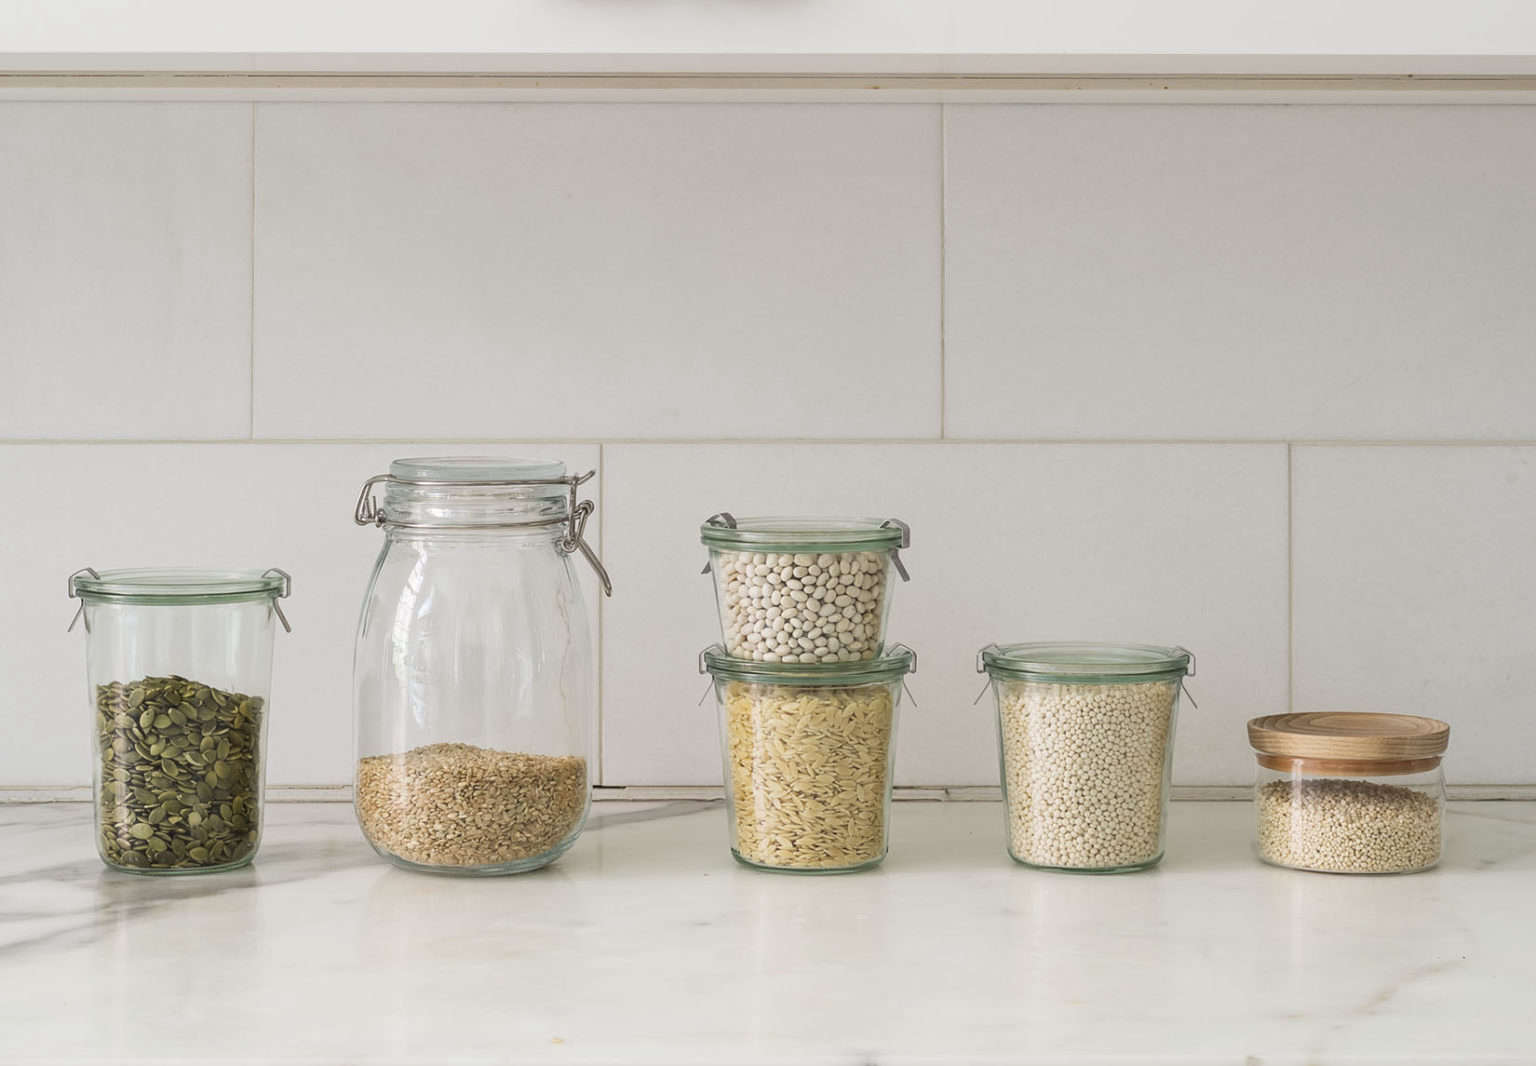 Decanting Grains in Weck Jars Styling Alexa Hotz Photo Matthew Williams